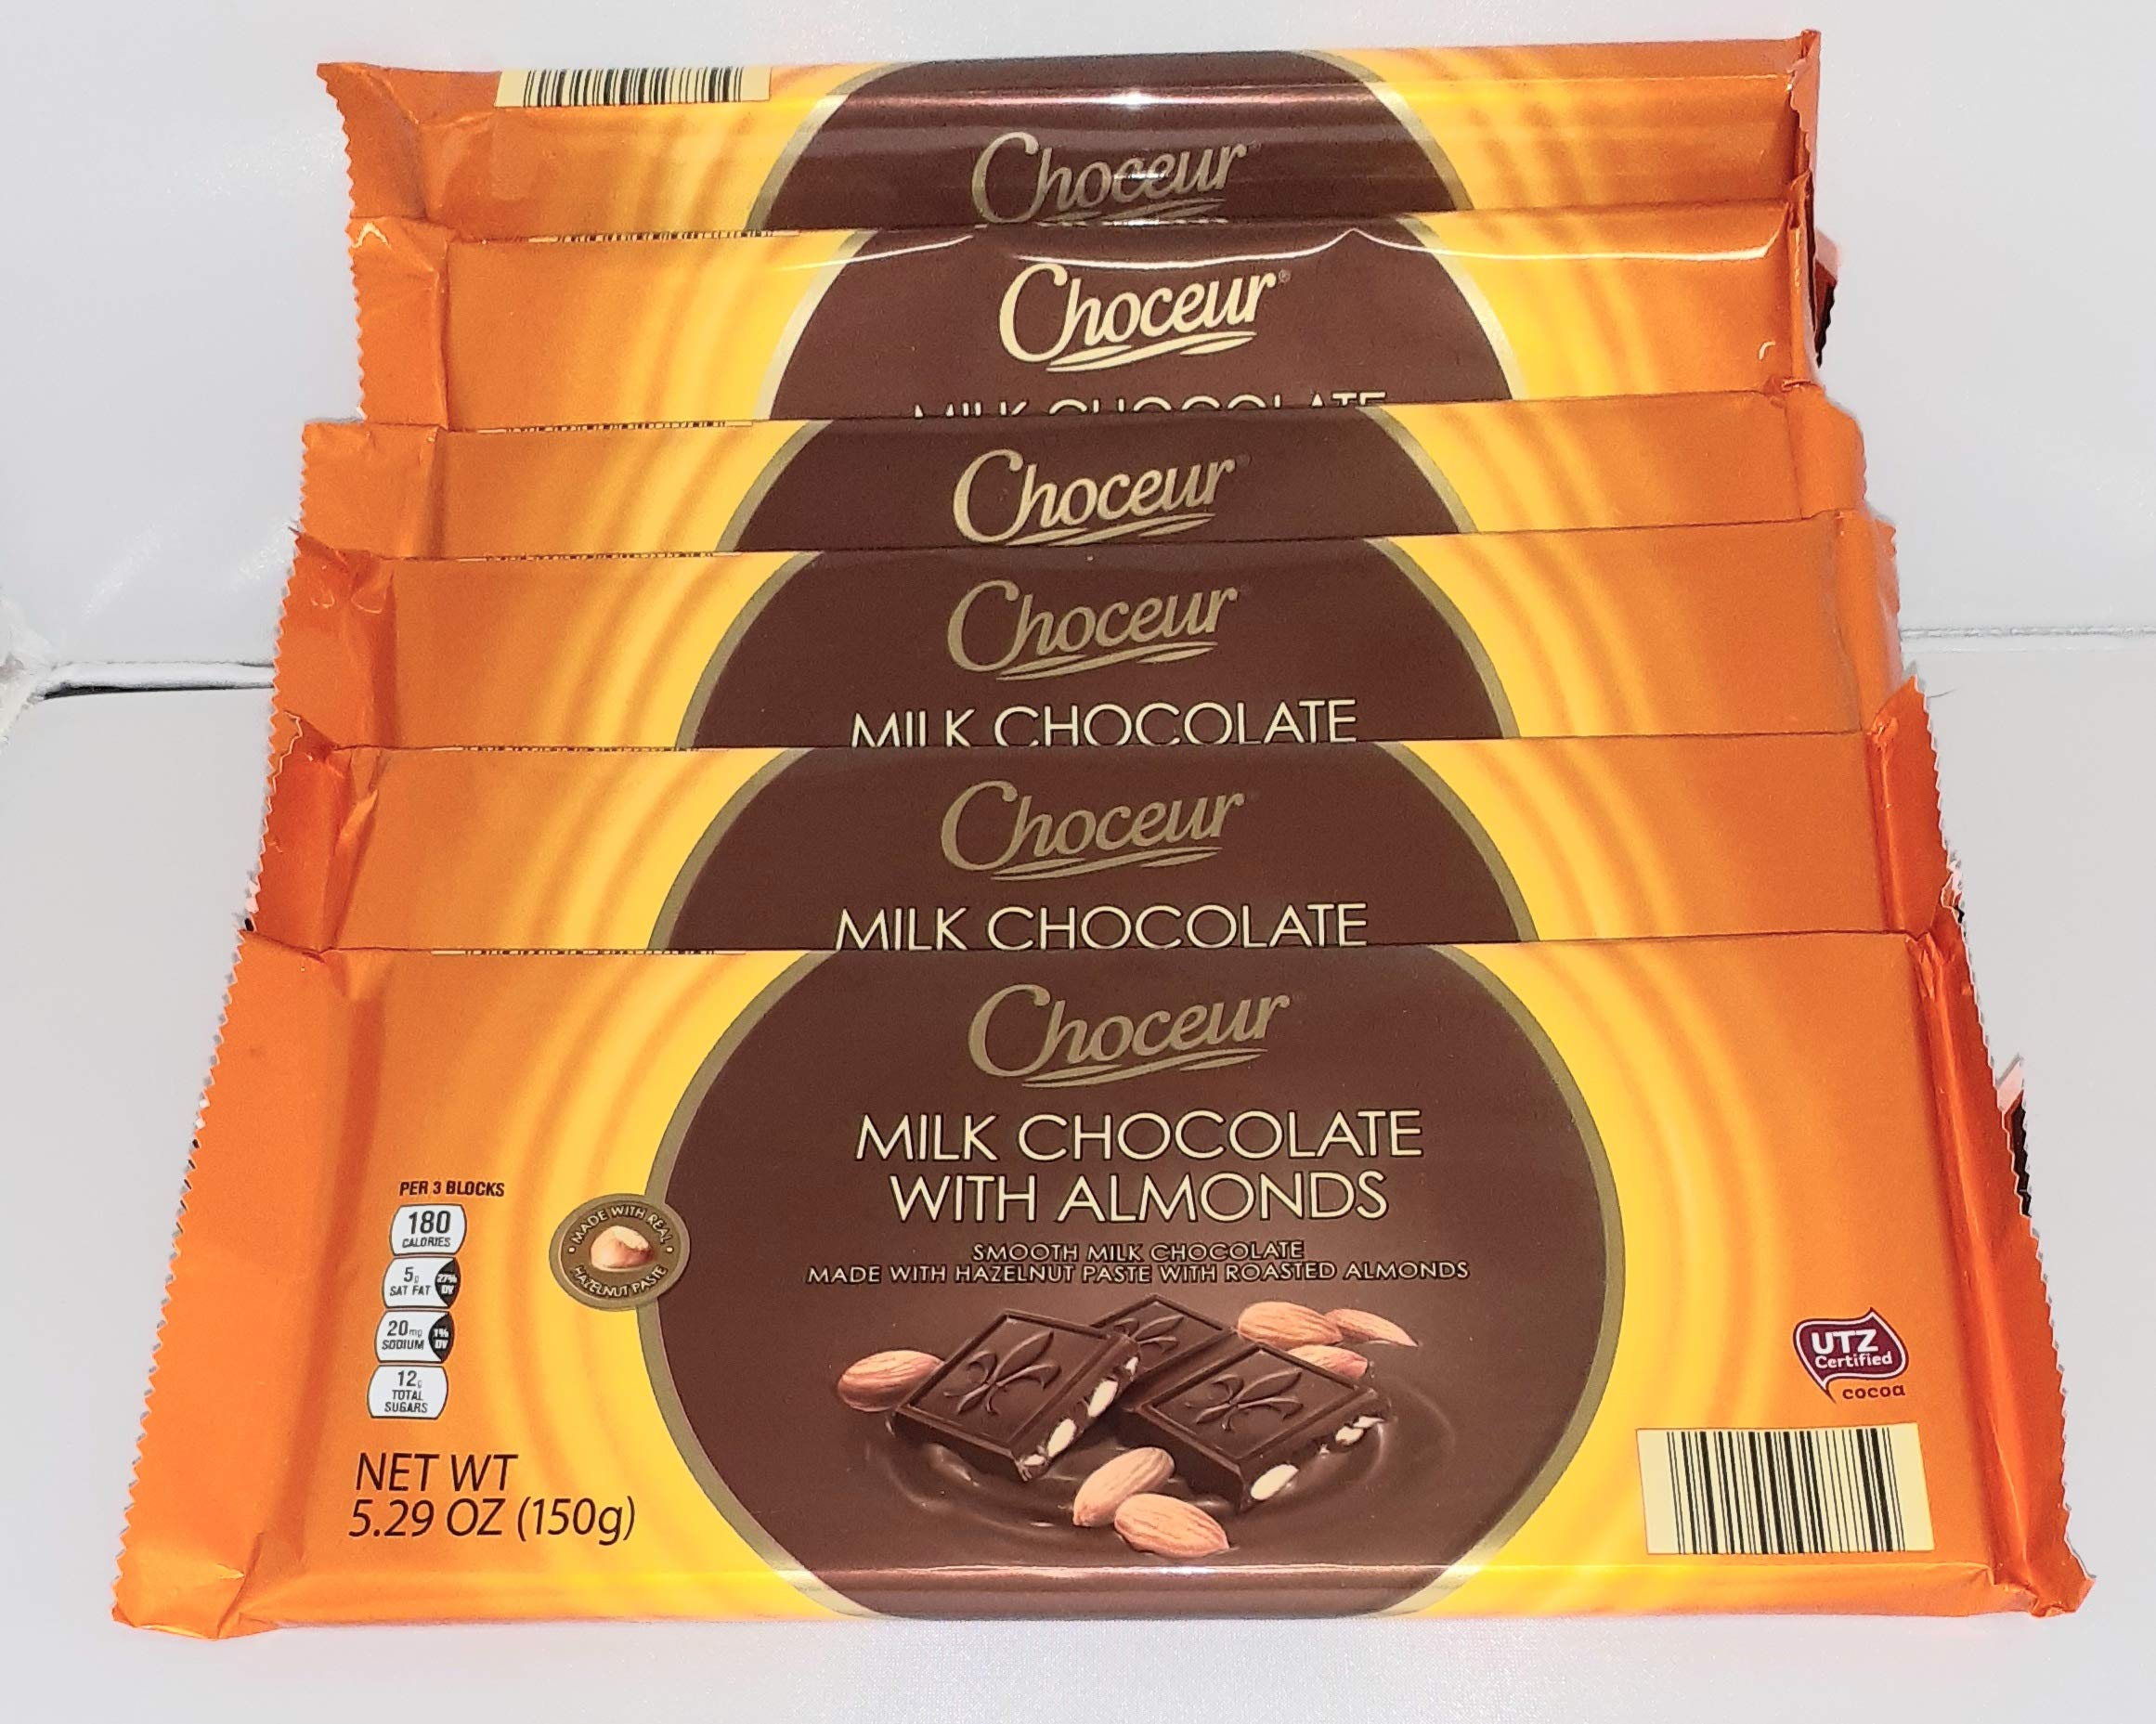 Choceur Milk Chocolate With Almonds 5.29 OZ (Pack of 6)